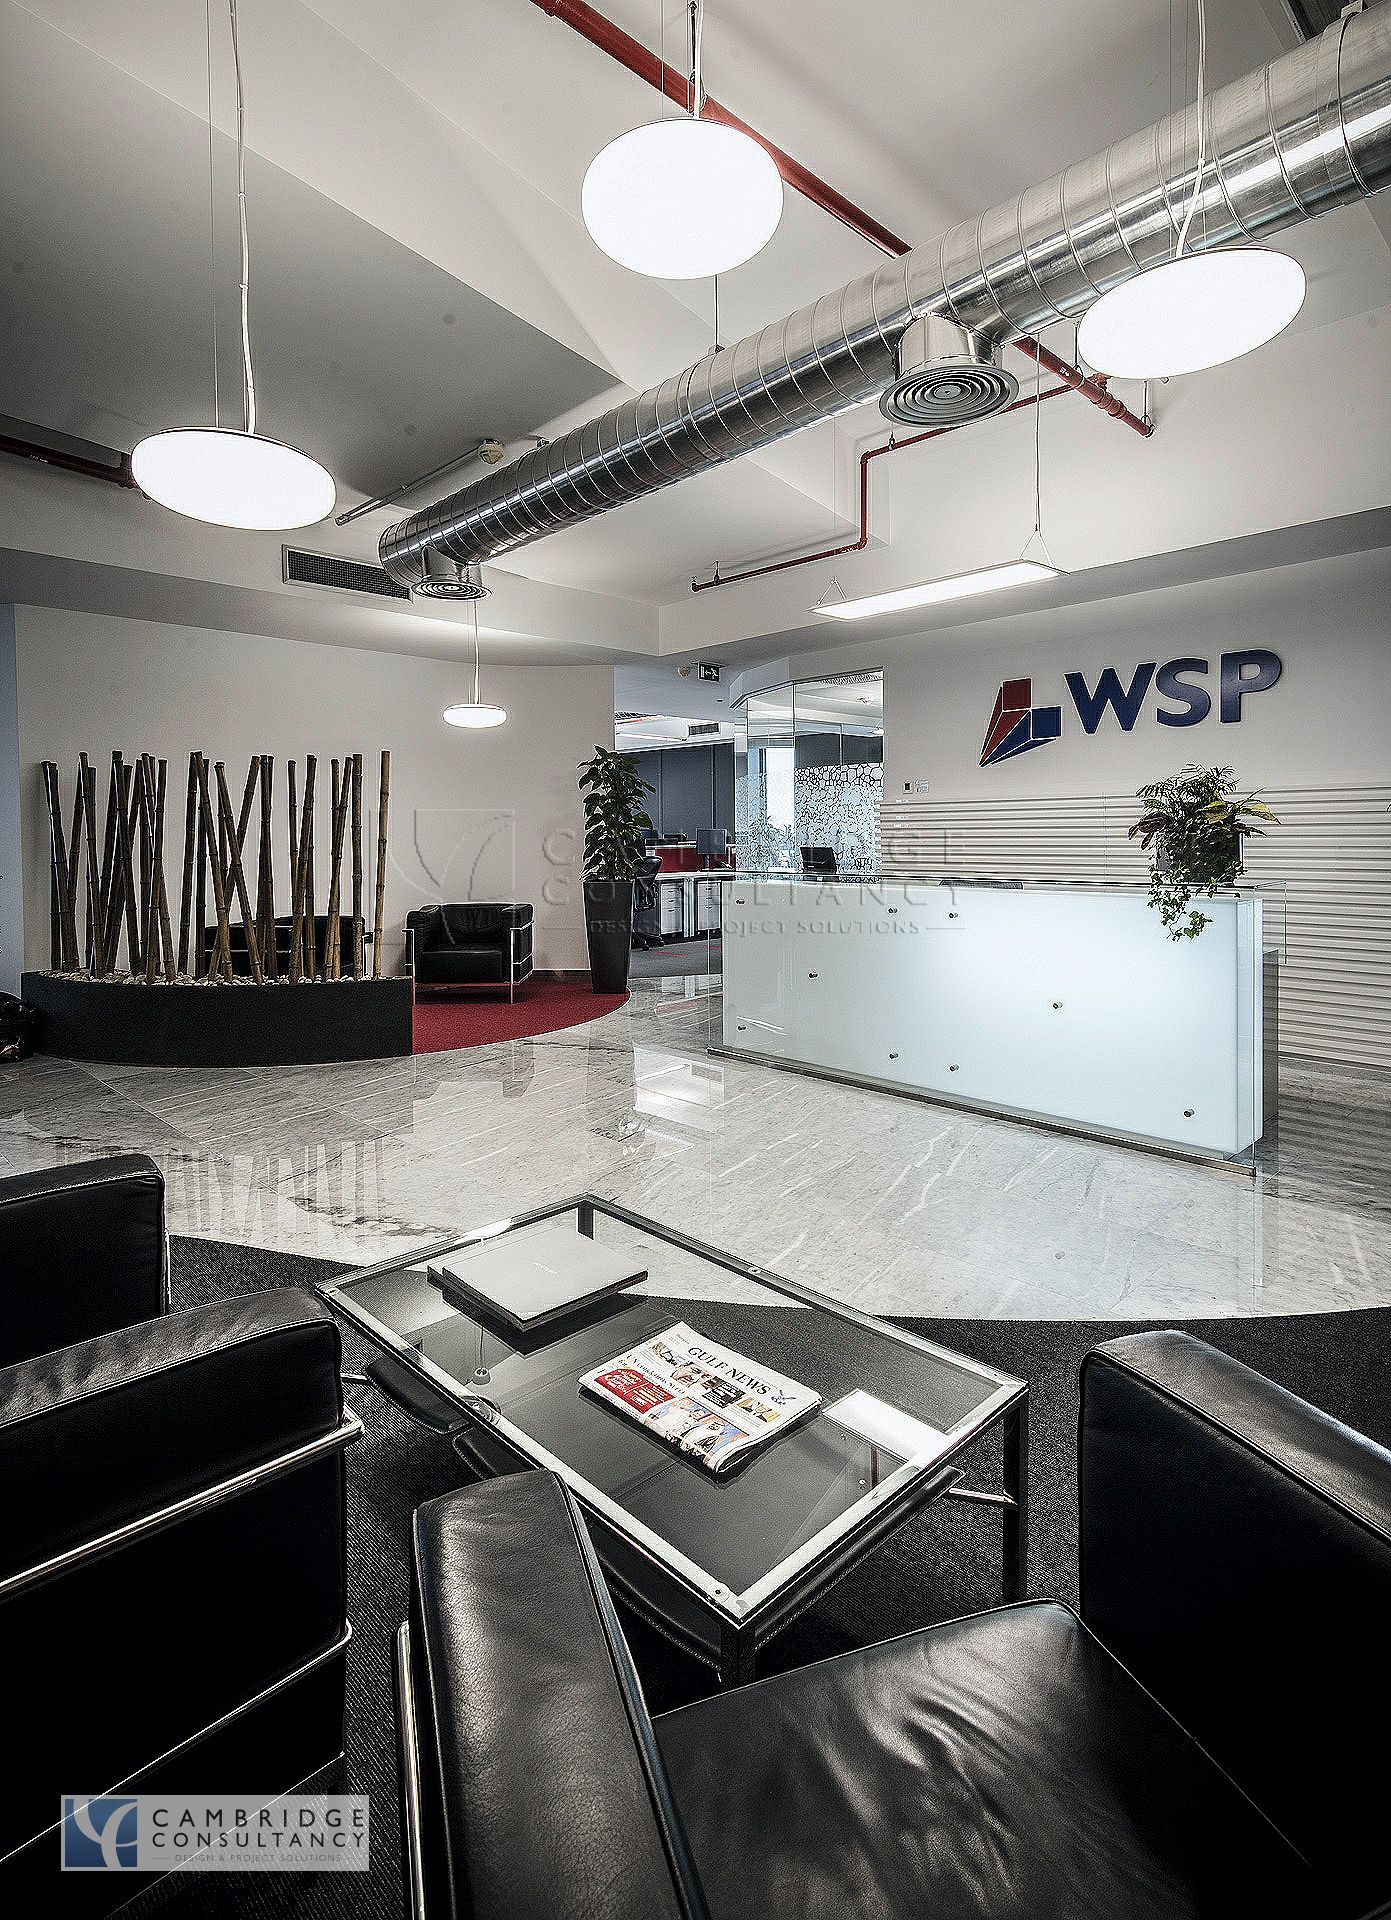 Wsp Office Modern Design Open Ceiling Industrial Aluminium Spiral Ac Ducting All Those Elements Make An Amazing Space Ranch Remodel Open Ceiling Hvac Duct